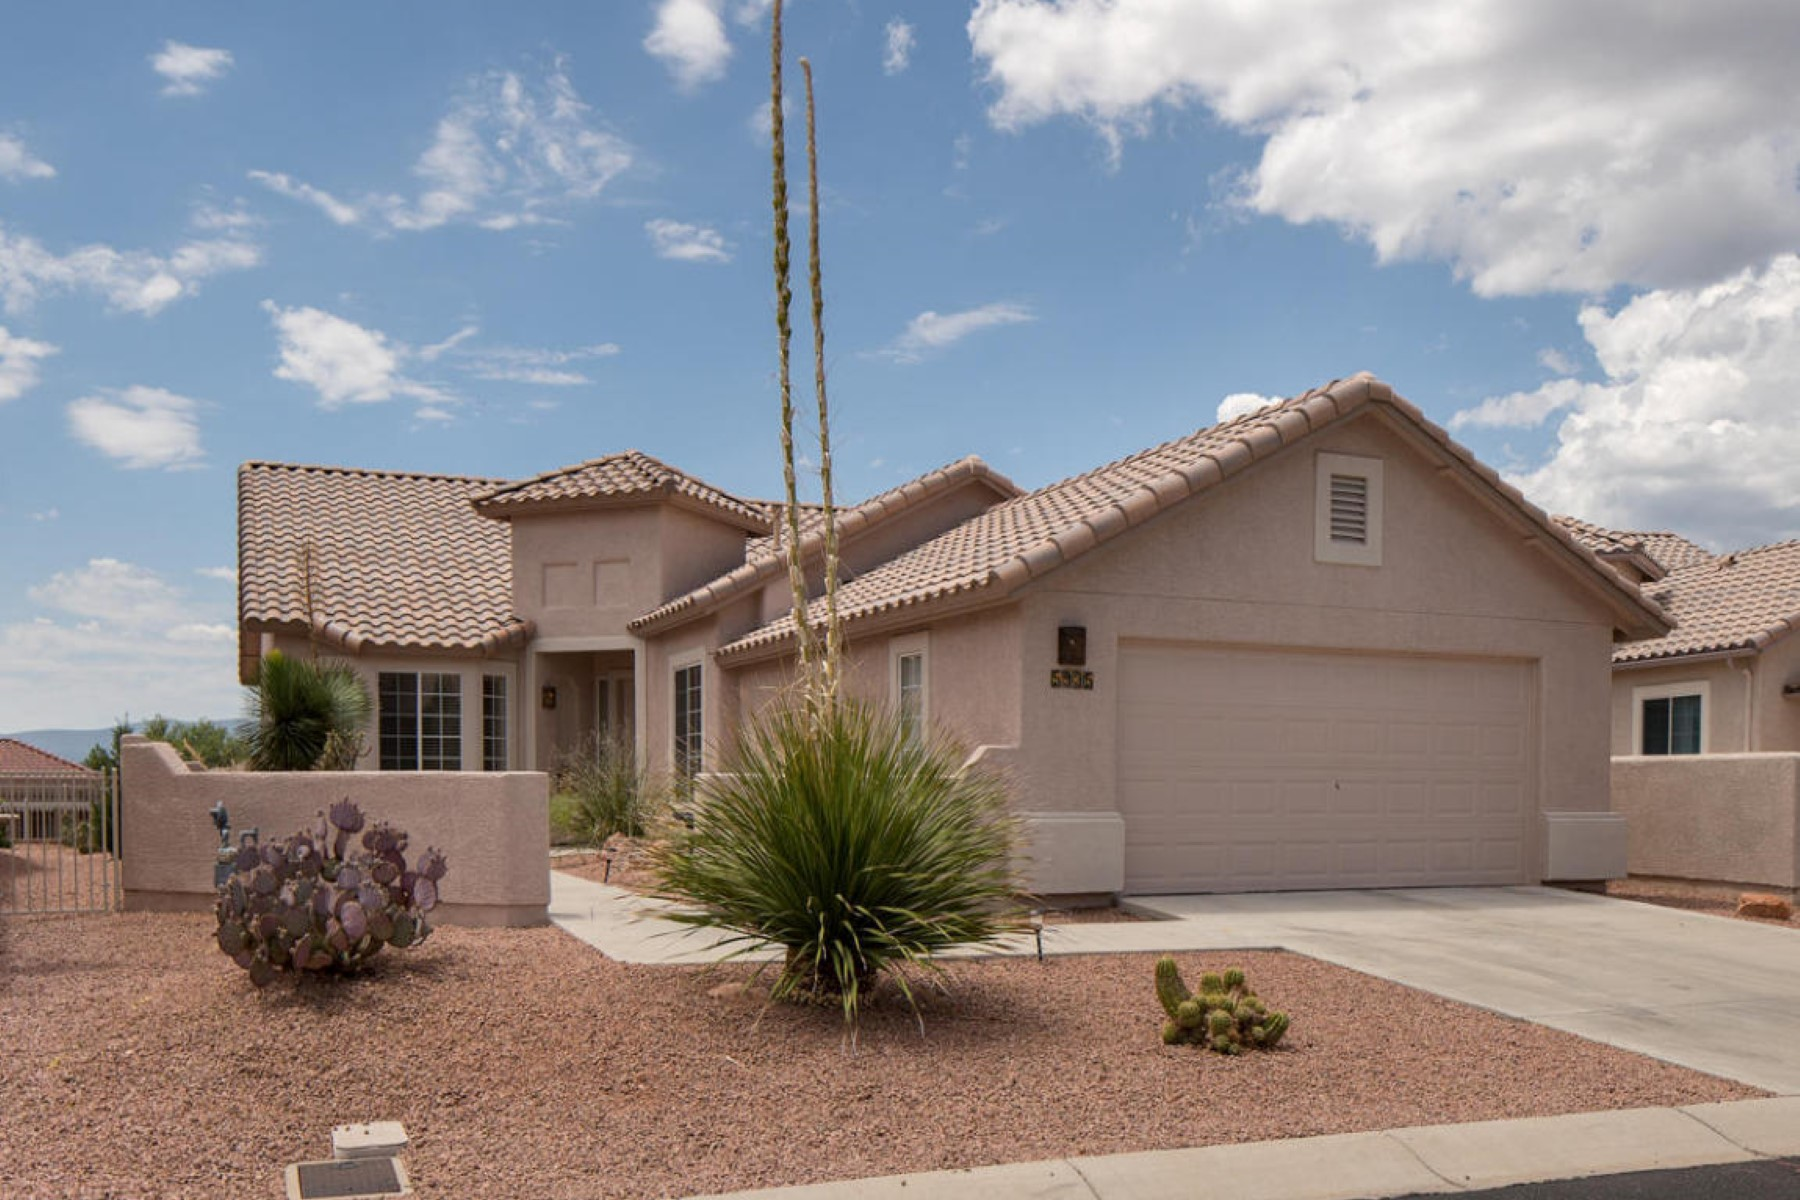 Single Family Home for Sale at Lovely home with breathtaking views. 5935 E Tee Time Court Cornville, Arizona 86325 United States